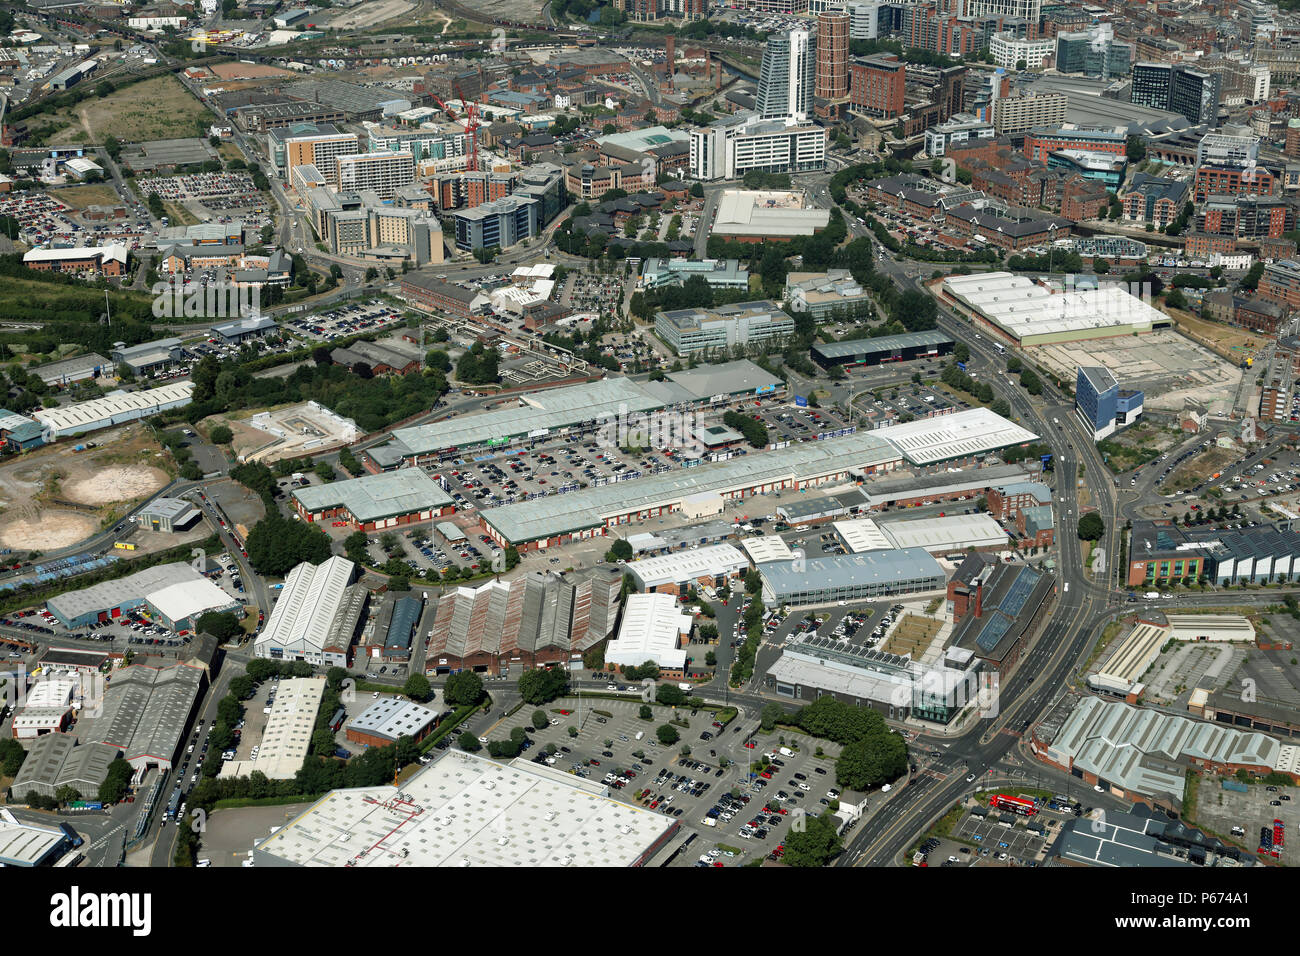 aerial view of the Hunslet area of Leeds with Crown Point Shopping Centre prominent - Stock Image